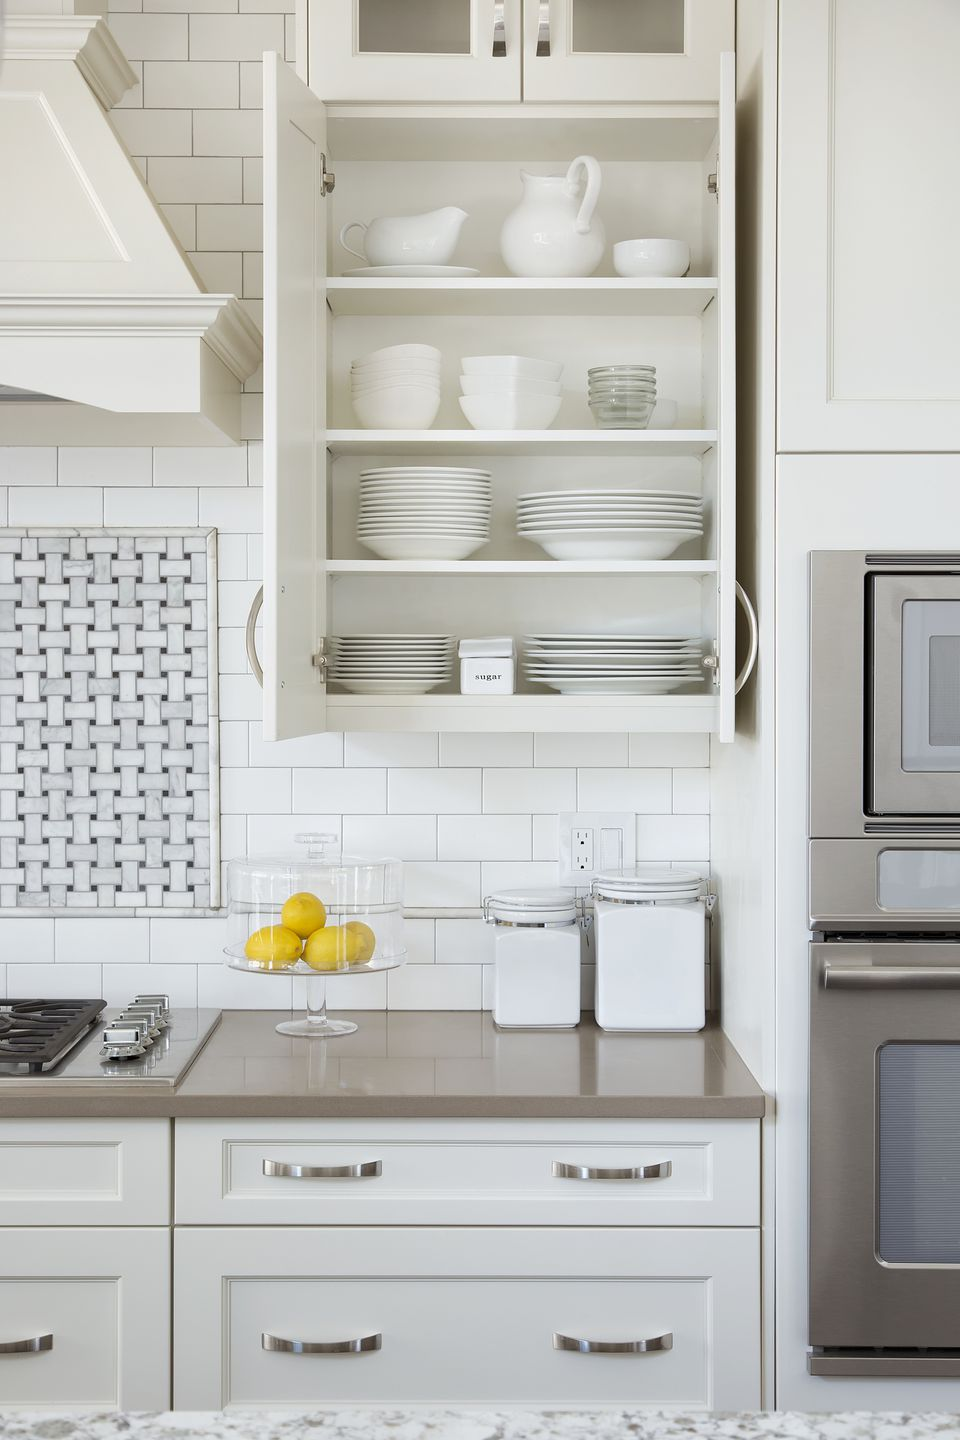 how to arrange pots and pans in kitchen modern designs organize your cabinets